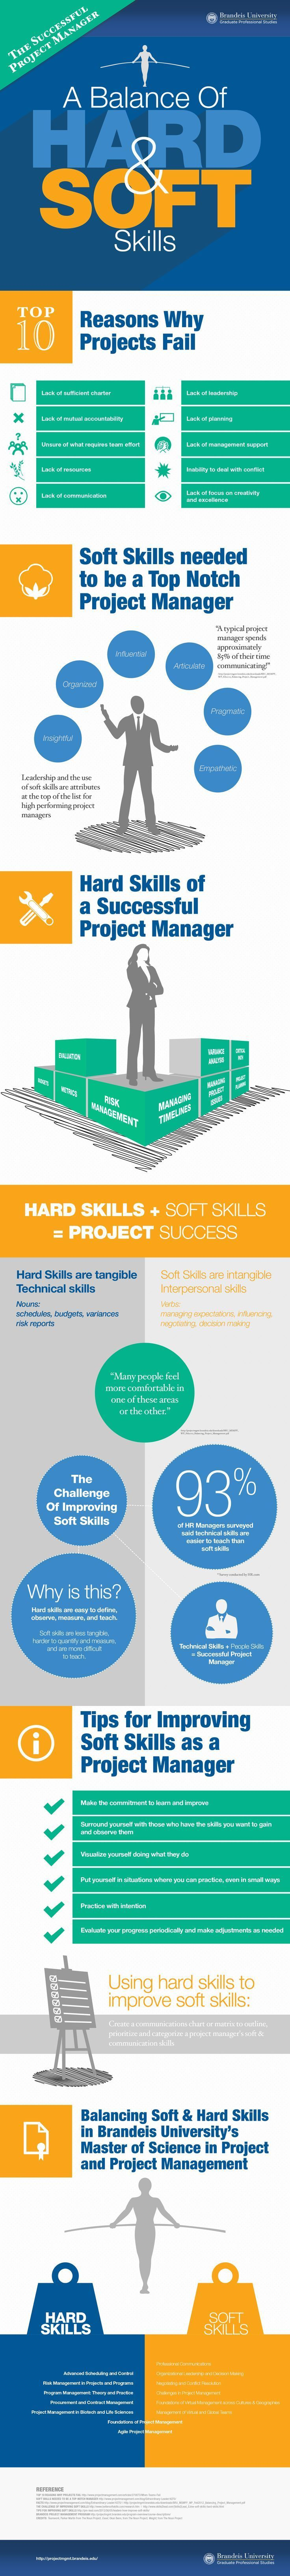 top soft skills in demand career jobsearch so called top 10 soft skills in demand 2014 career jobsearch so called soft skills are harder to do well than hard skills career advice programming